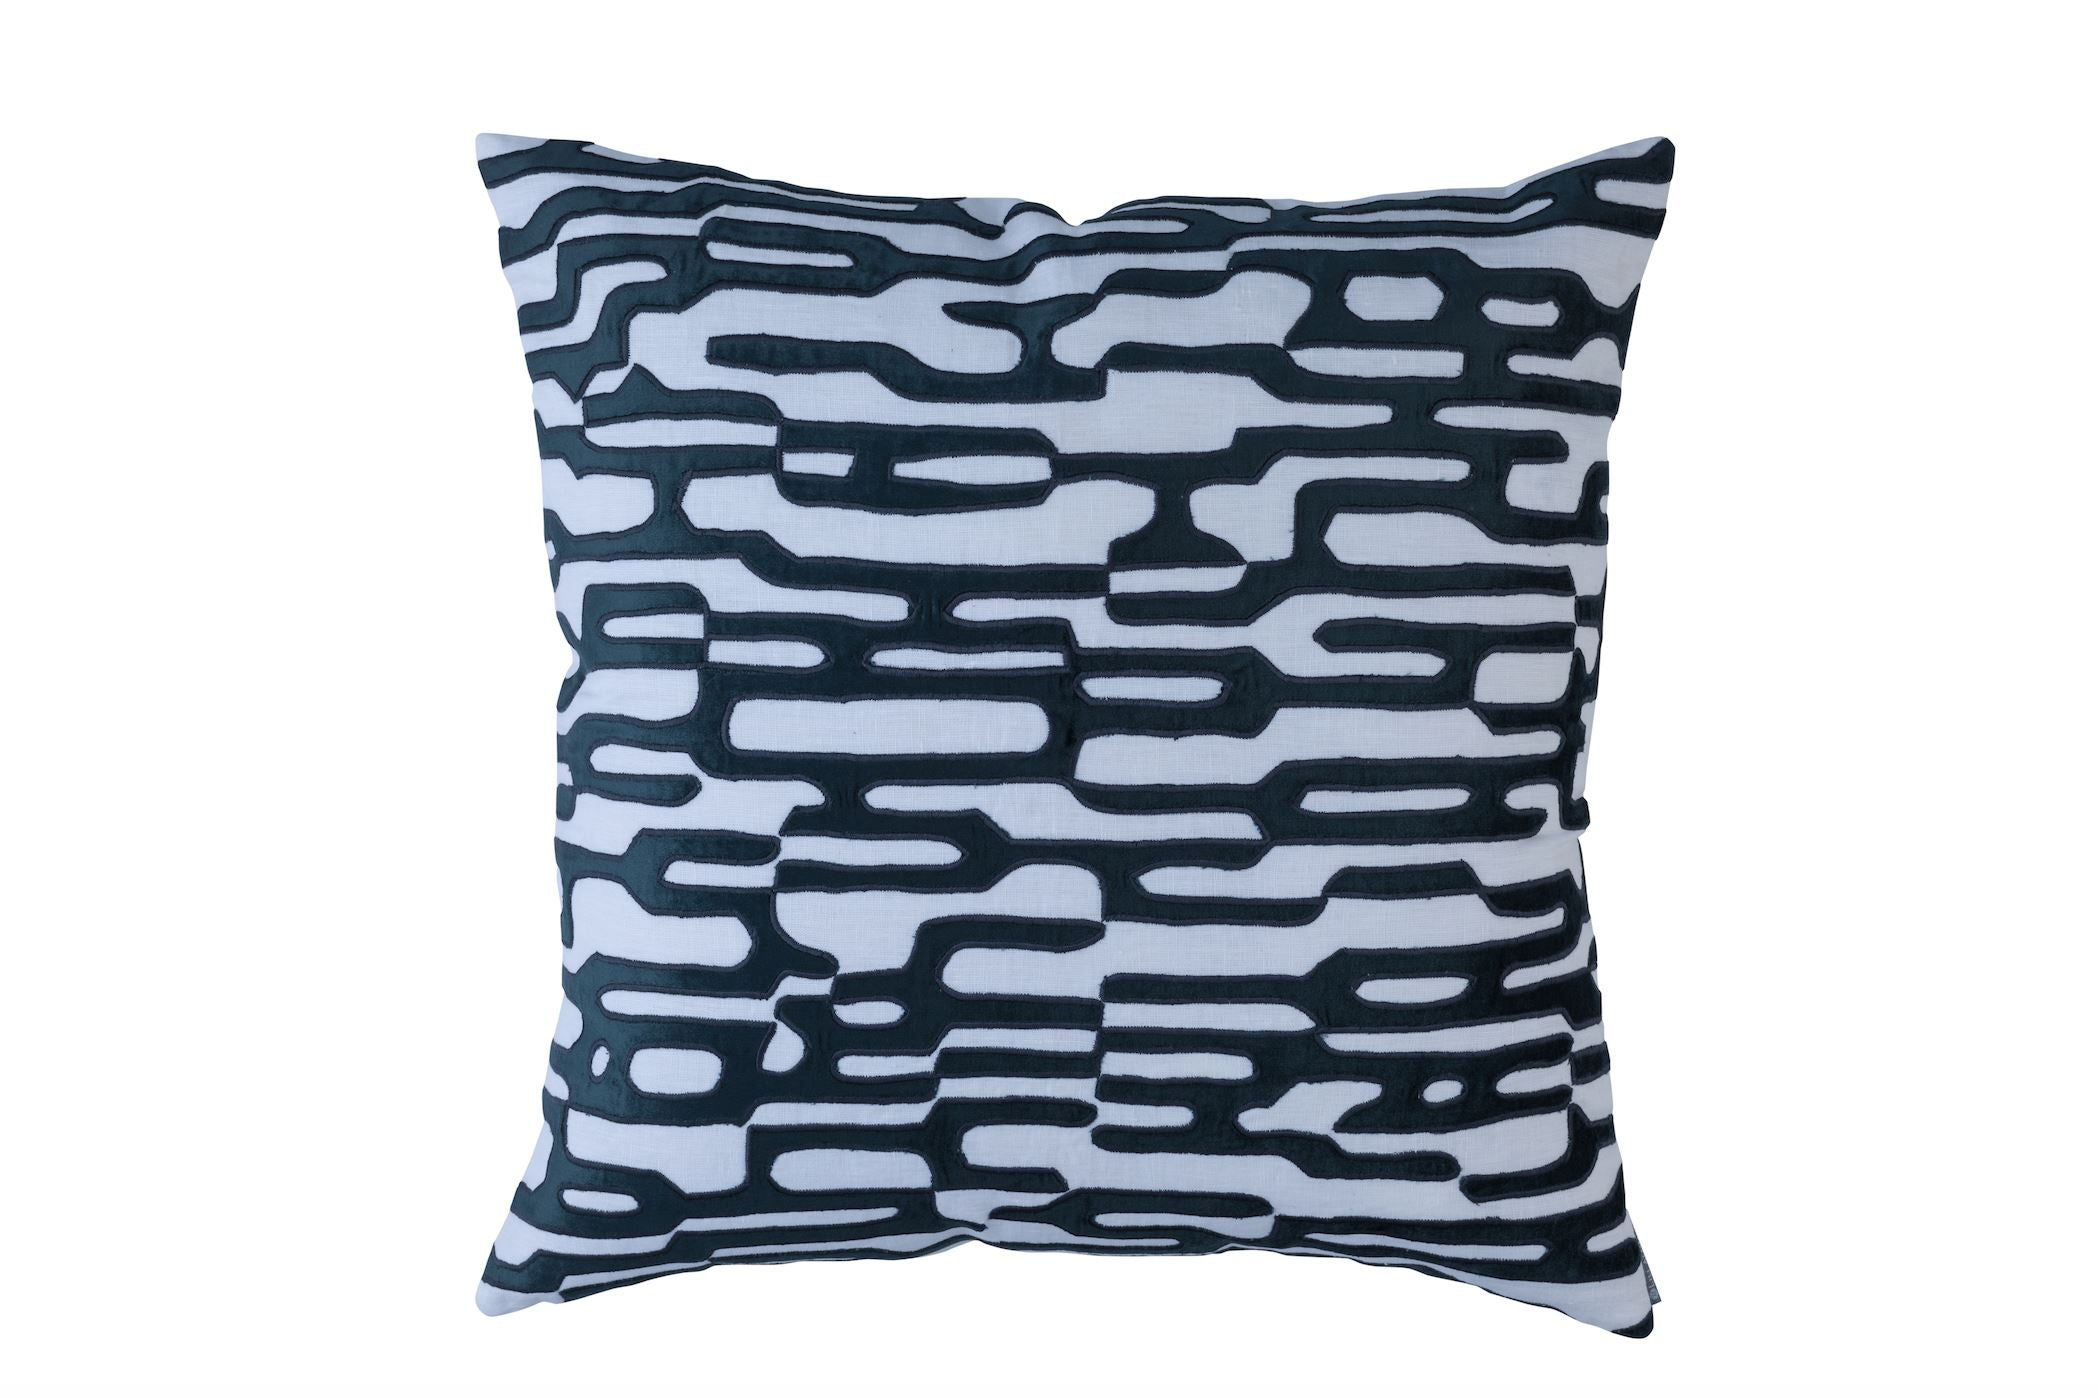 Christian White and Midnight Square Pillow by Lili Alessandra